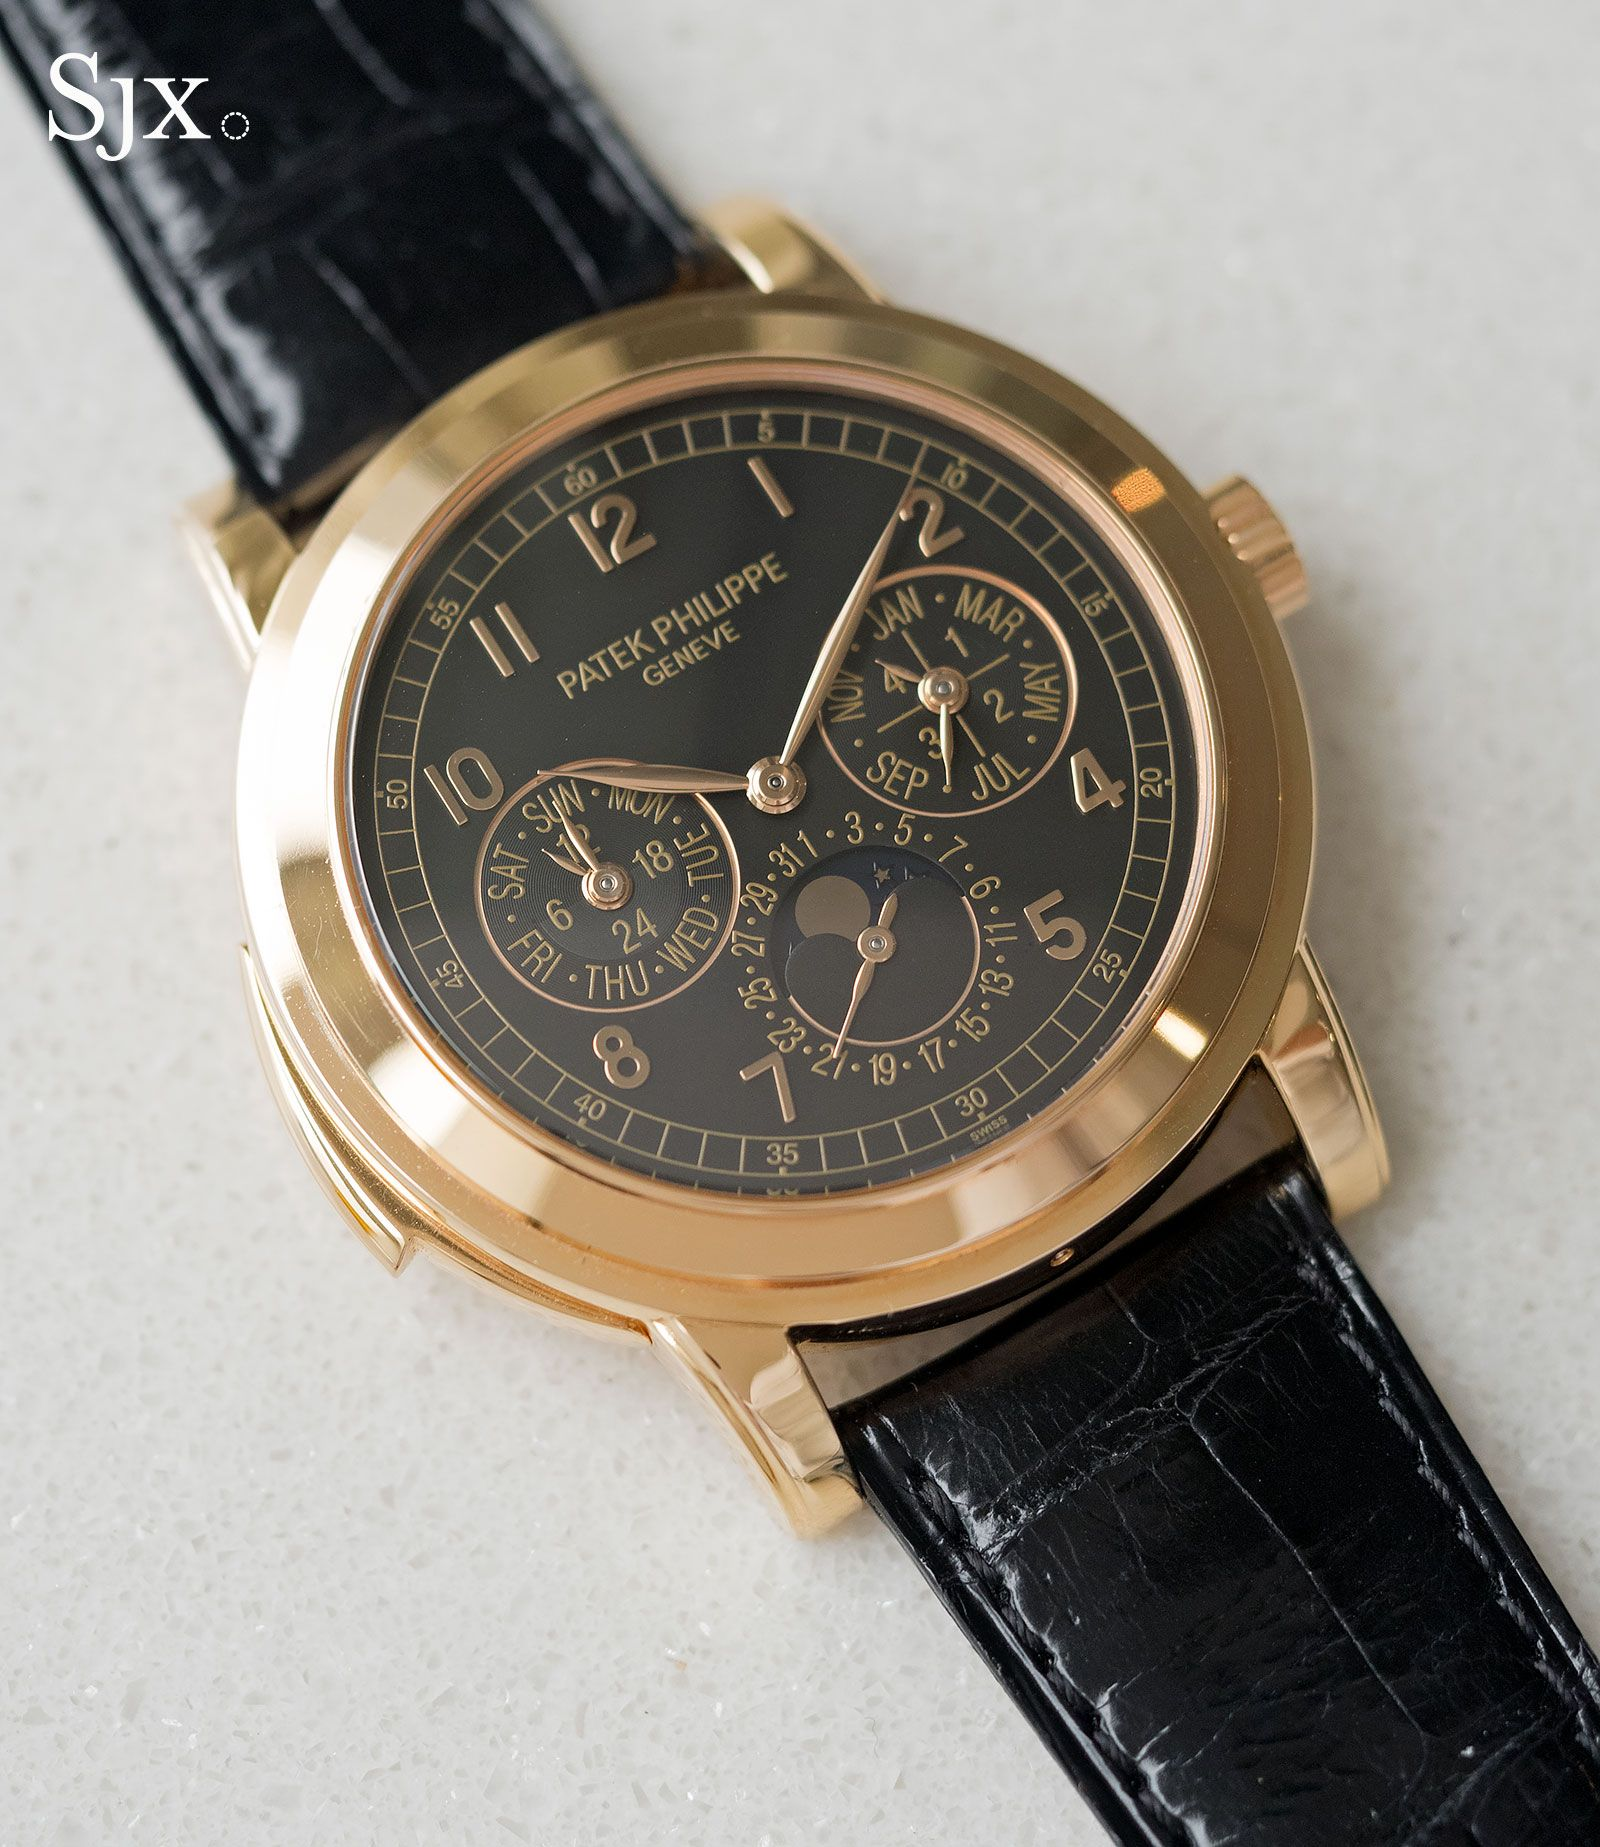 793f01c31e8 Patek Philippe ref. 5074R minute repeater with perpetual calendar The ref.  5074 is notable within the Patek Philippe grand complication line-up for  being ...